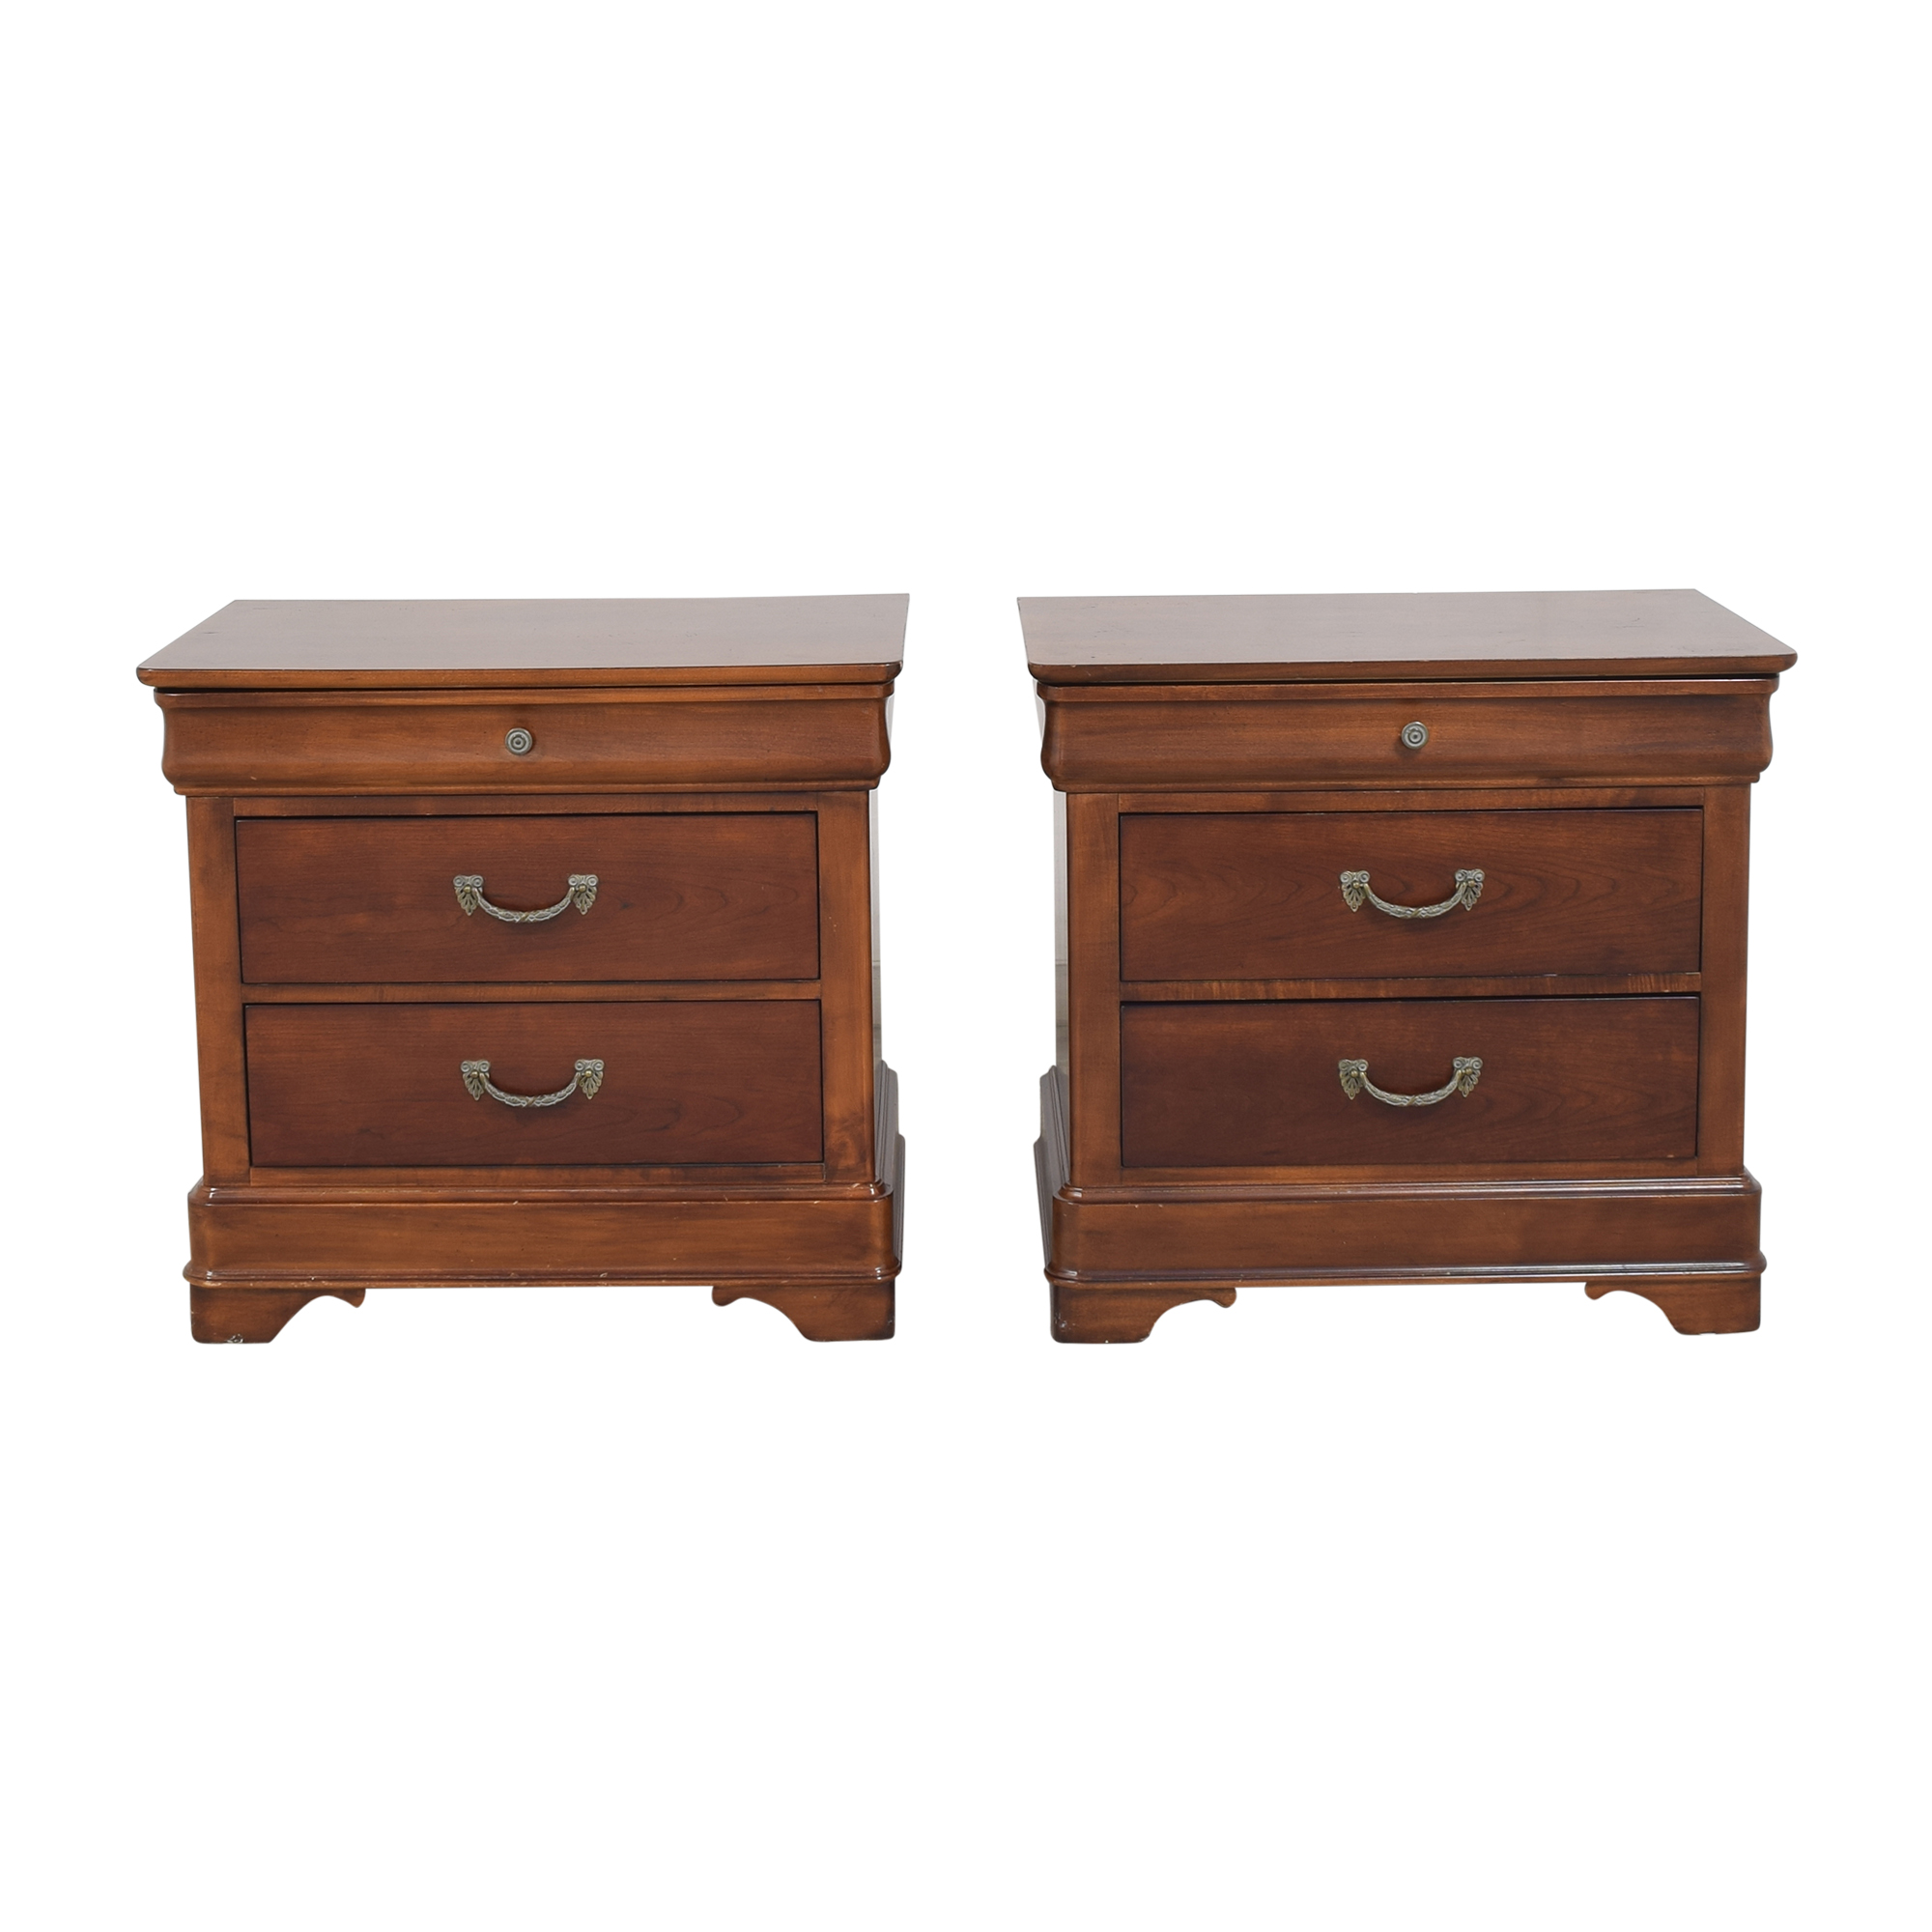 buy Drexel Heritage Delshire Three Drawer Nightstands Drexel Heritage Tables